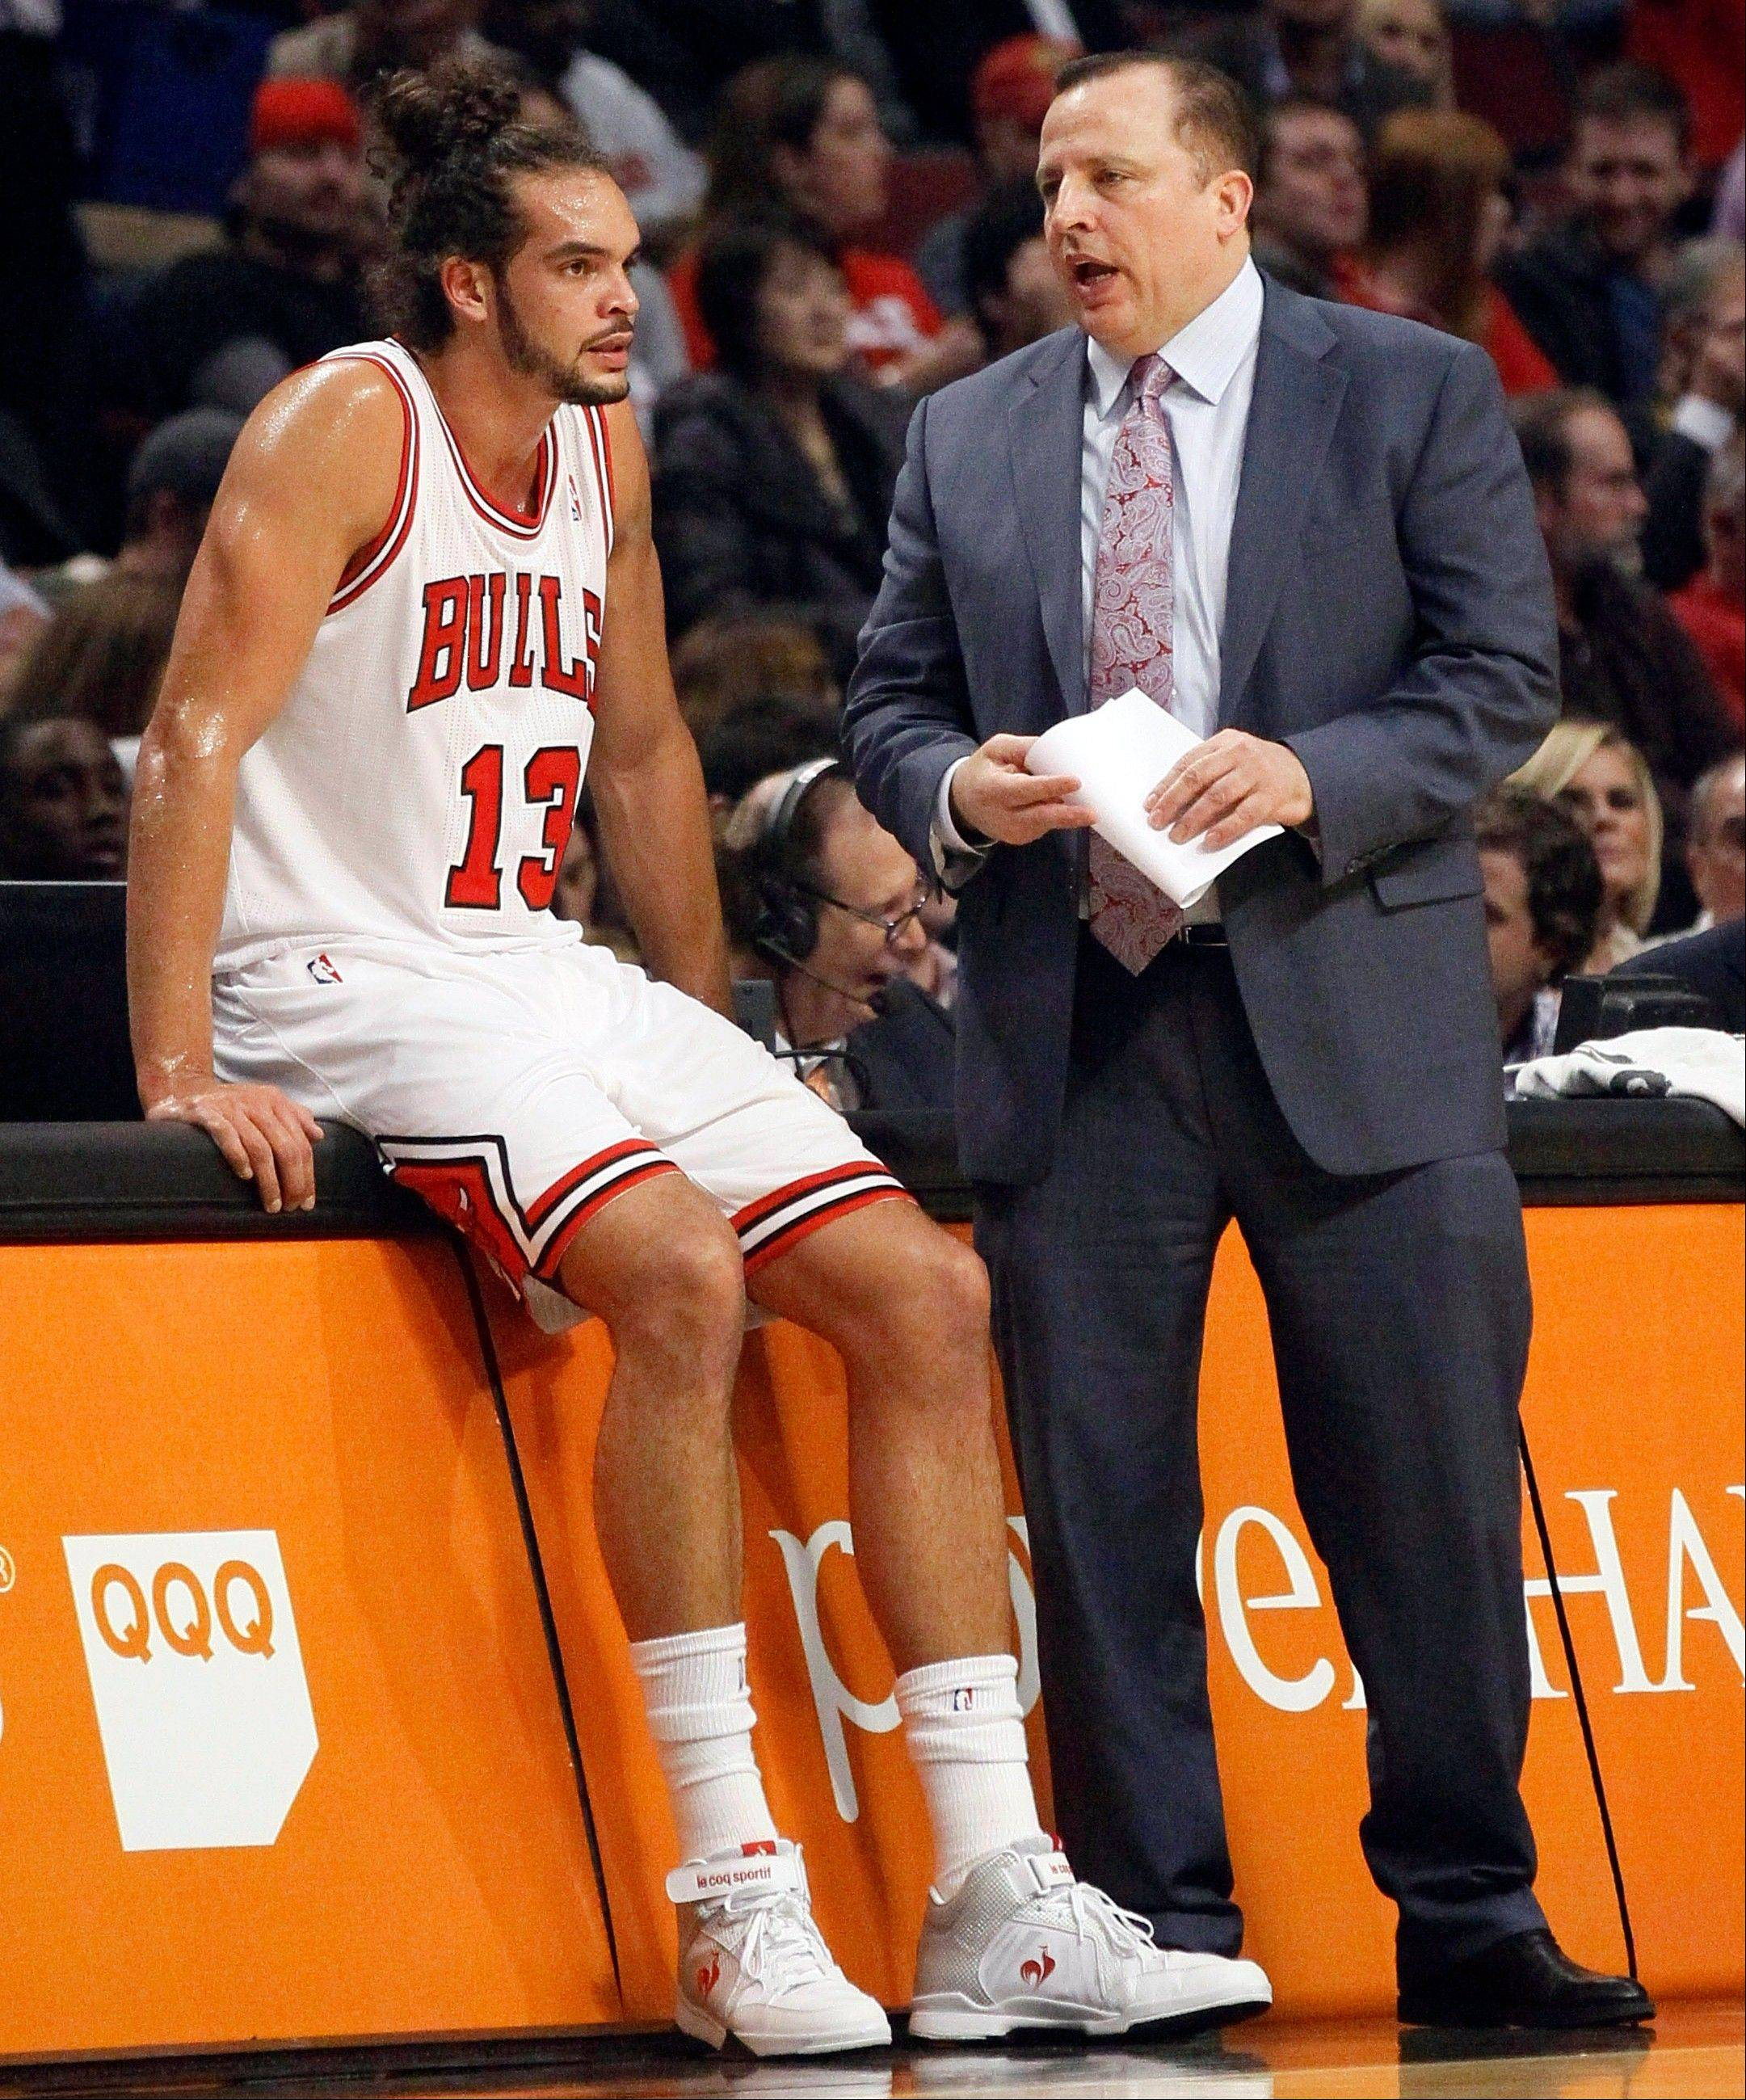 Bulls head coach Tom Thibodeau, right, talks to center Joakim Noah Wednesday during a break in the first half against the Sacramento Kings at the United Center.